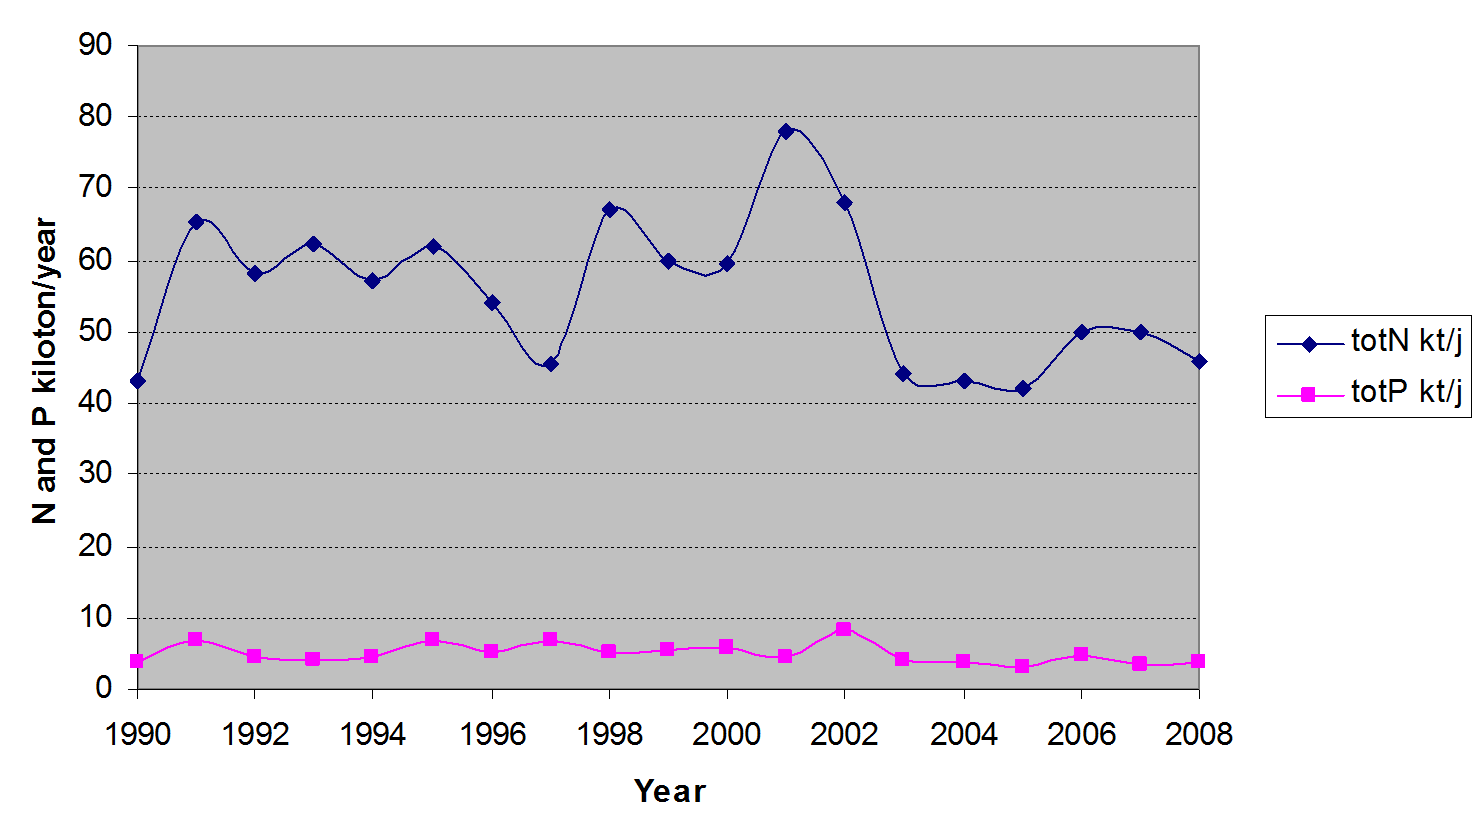 Figure 4: Total Nitrogen(N) and phosphorus (P) discharges to the Belgian coastal waters by rivers from 1990 to 2008